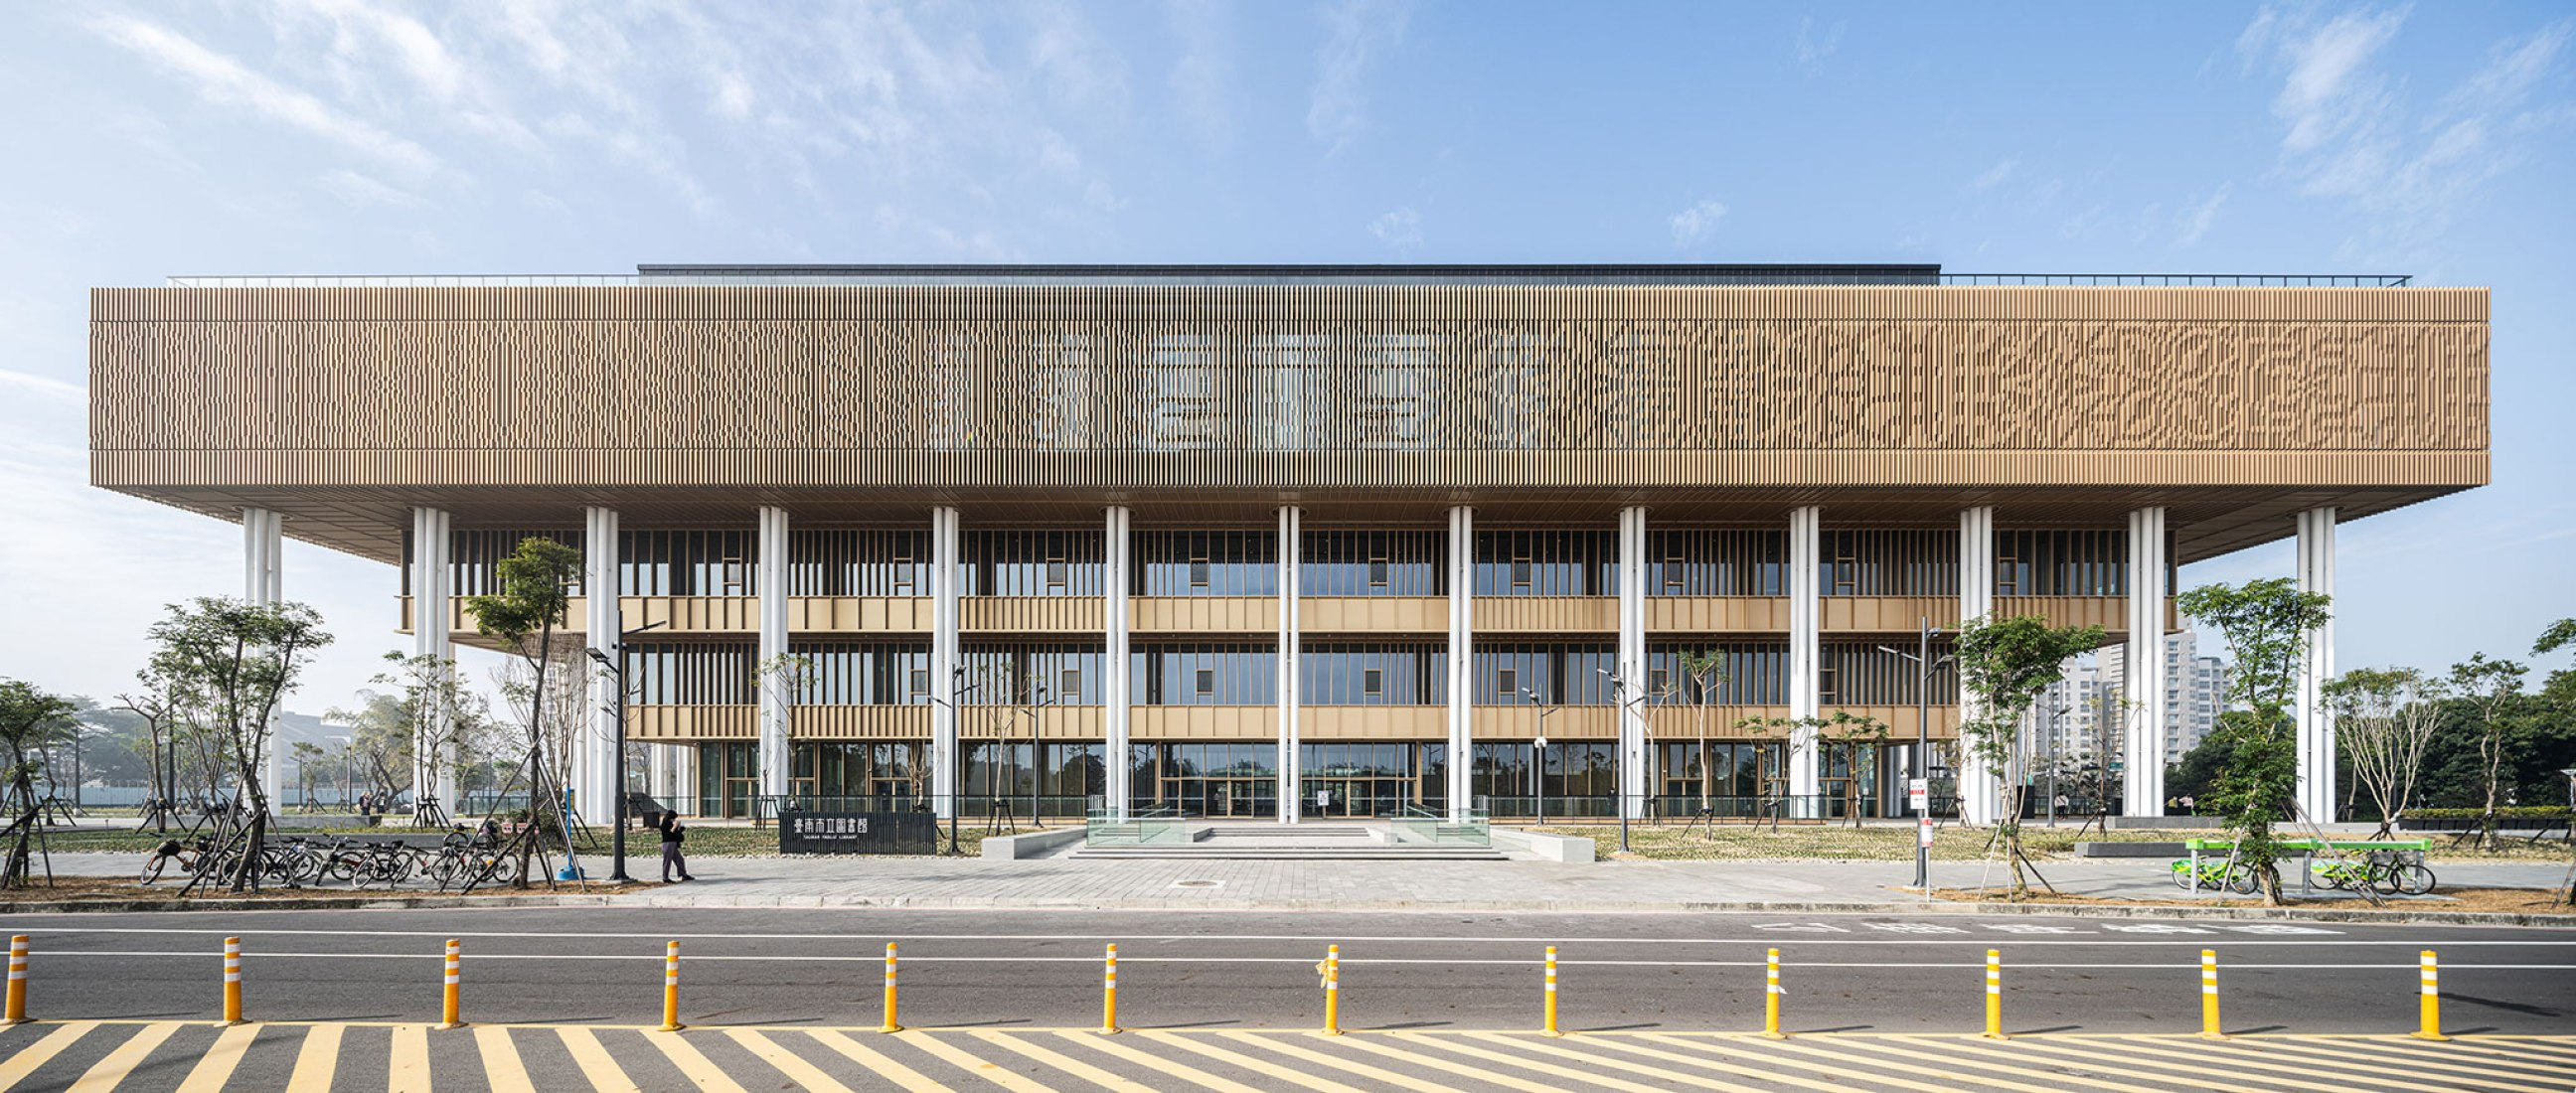 Tainan Public Library by Mecanoo and MAYU Architects. Photograph by Yu-Chen Chao